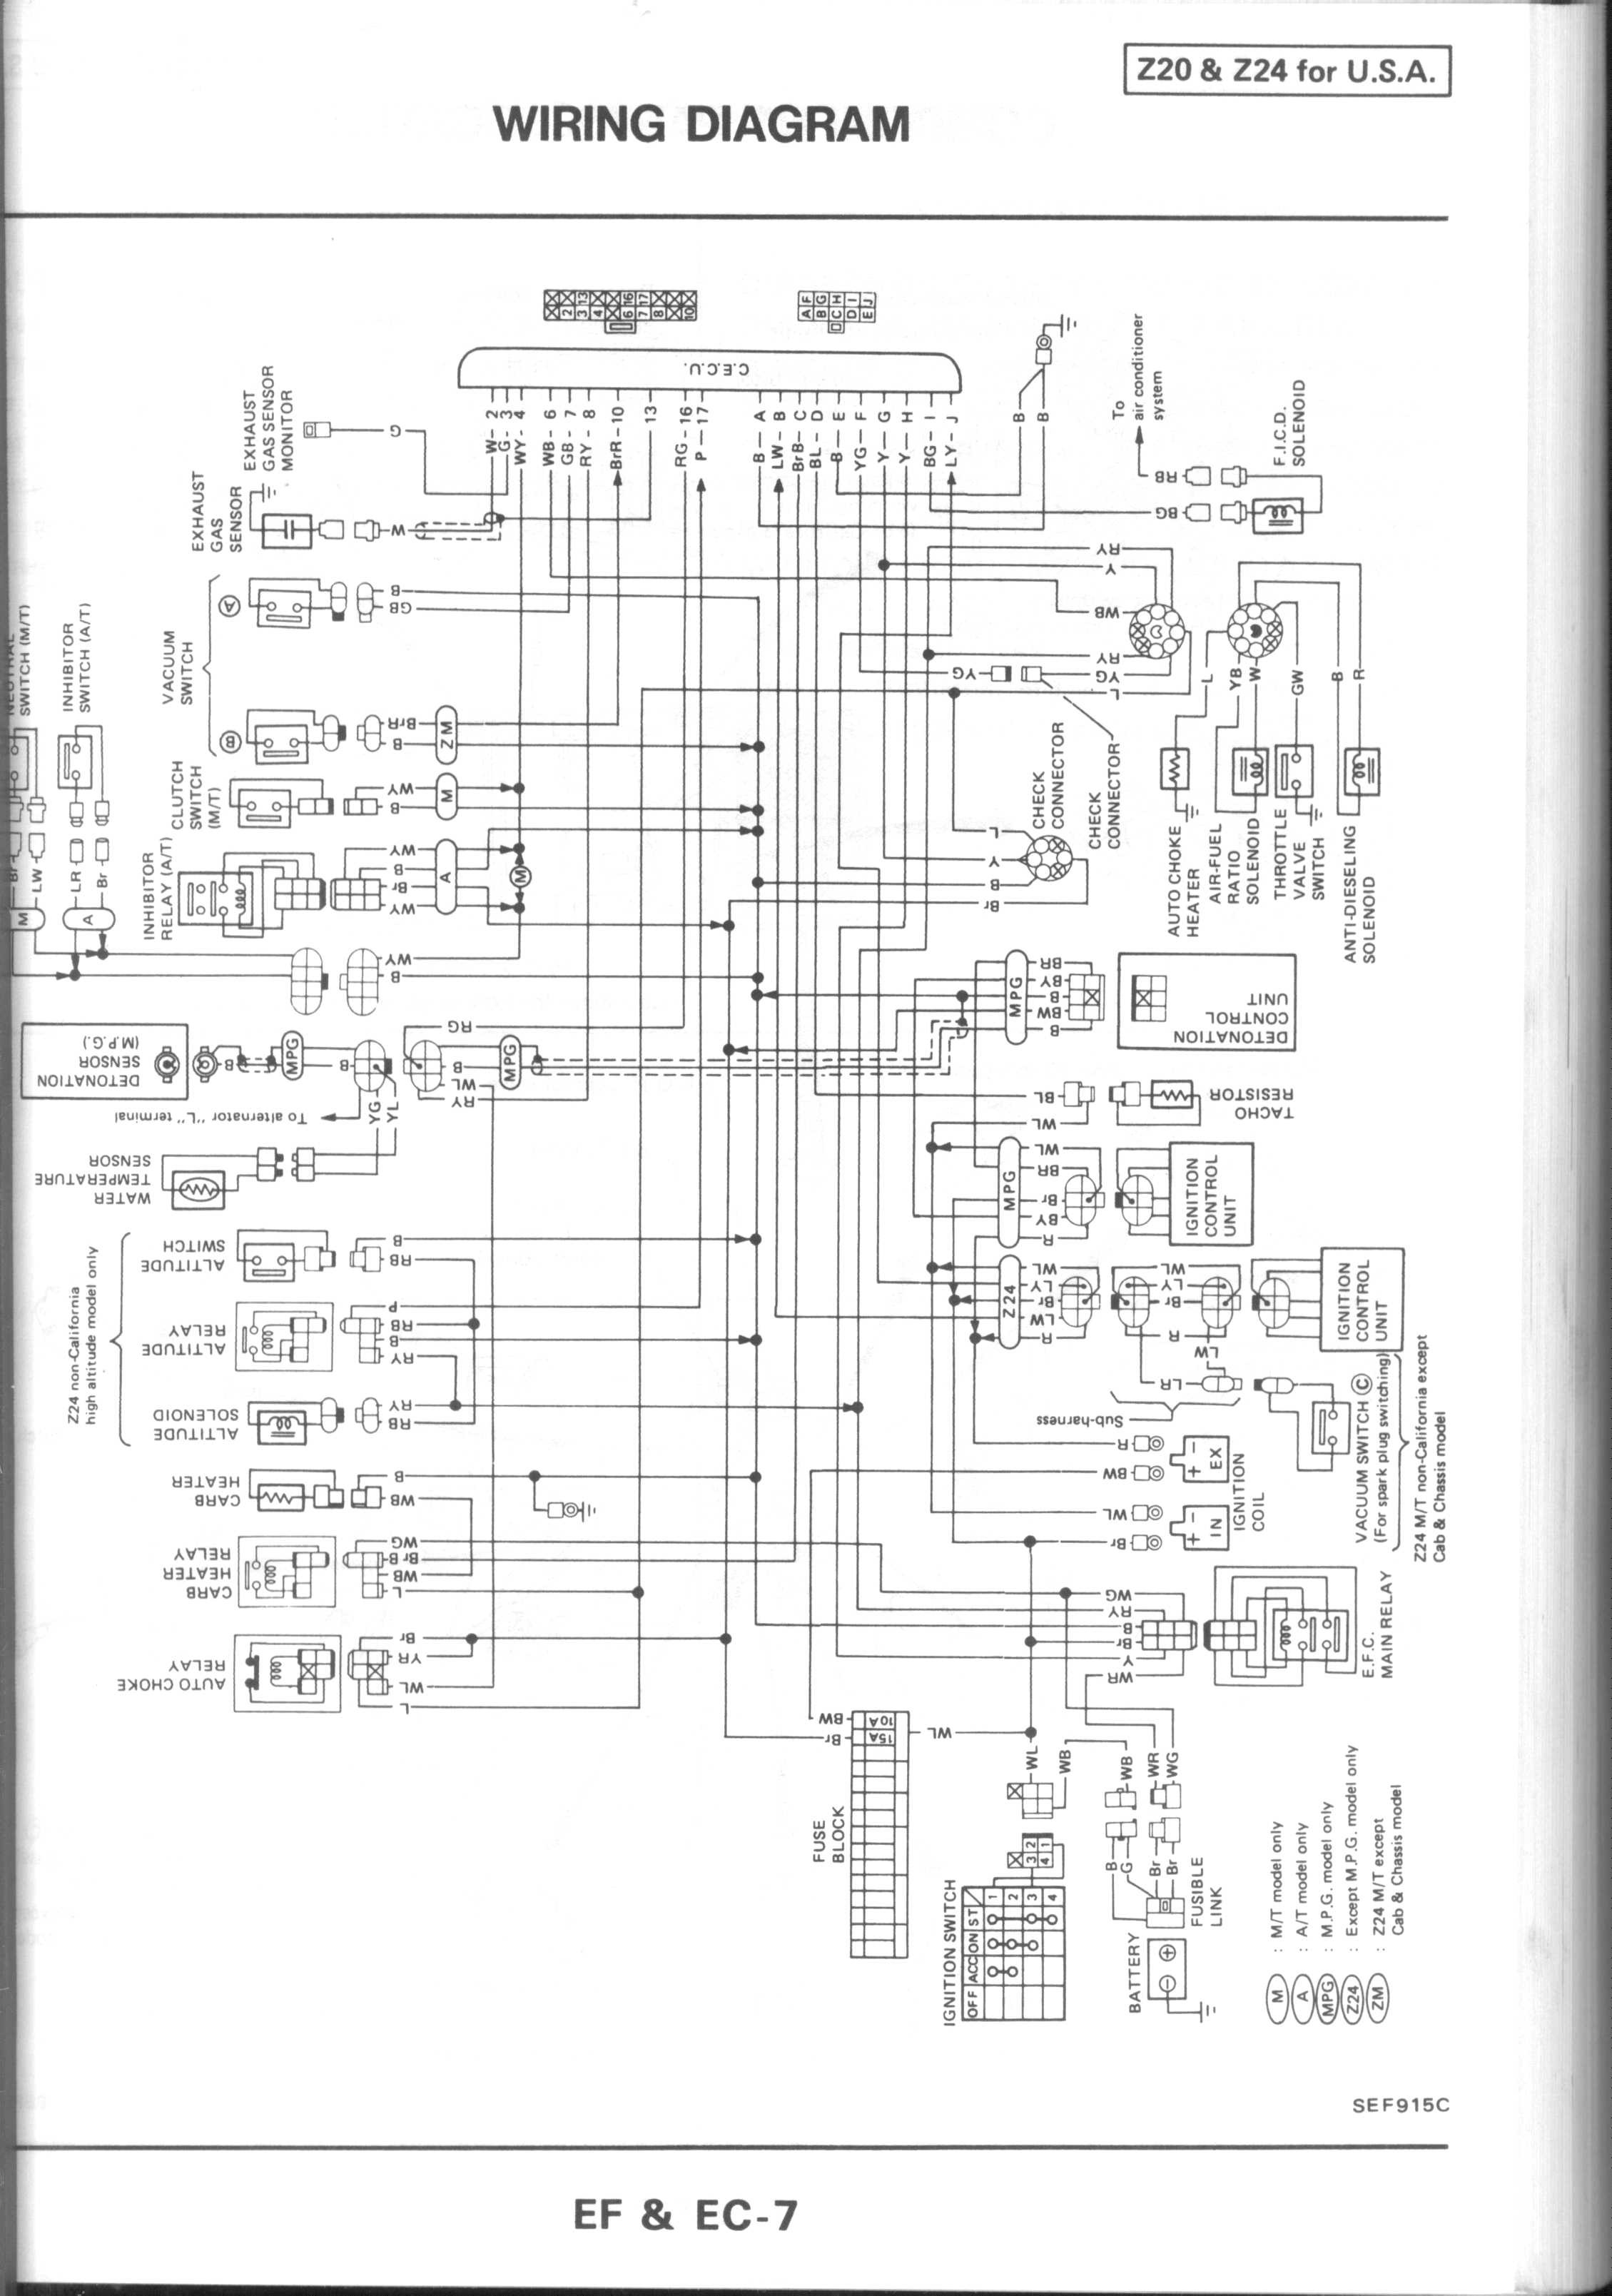 1995 nissan pickup engine diagram nissan maxima engine diagram rh detoxicrecenze com